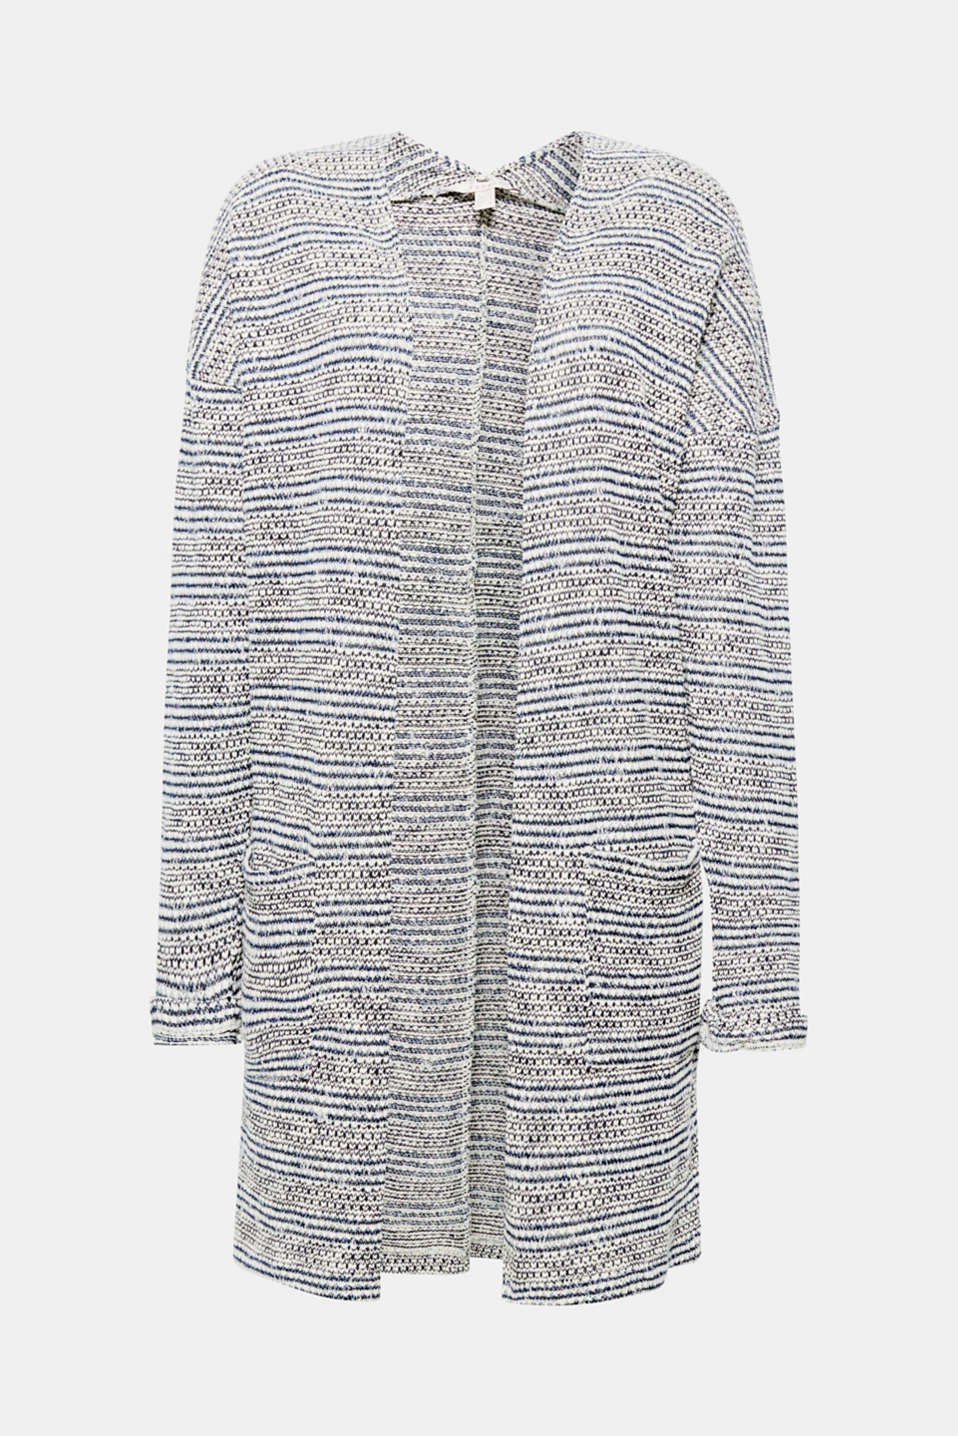 This cardigan will make a great addition to your outfits thanks to the airy jersey fabric.